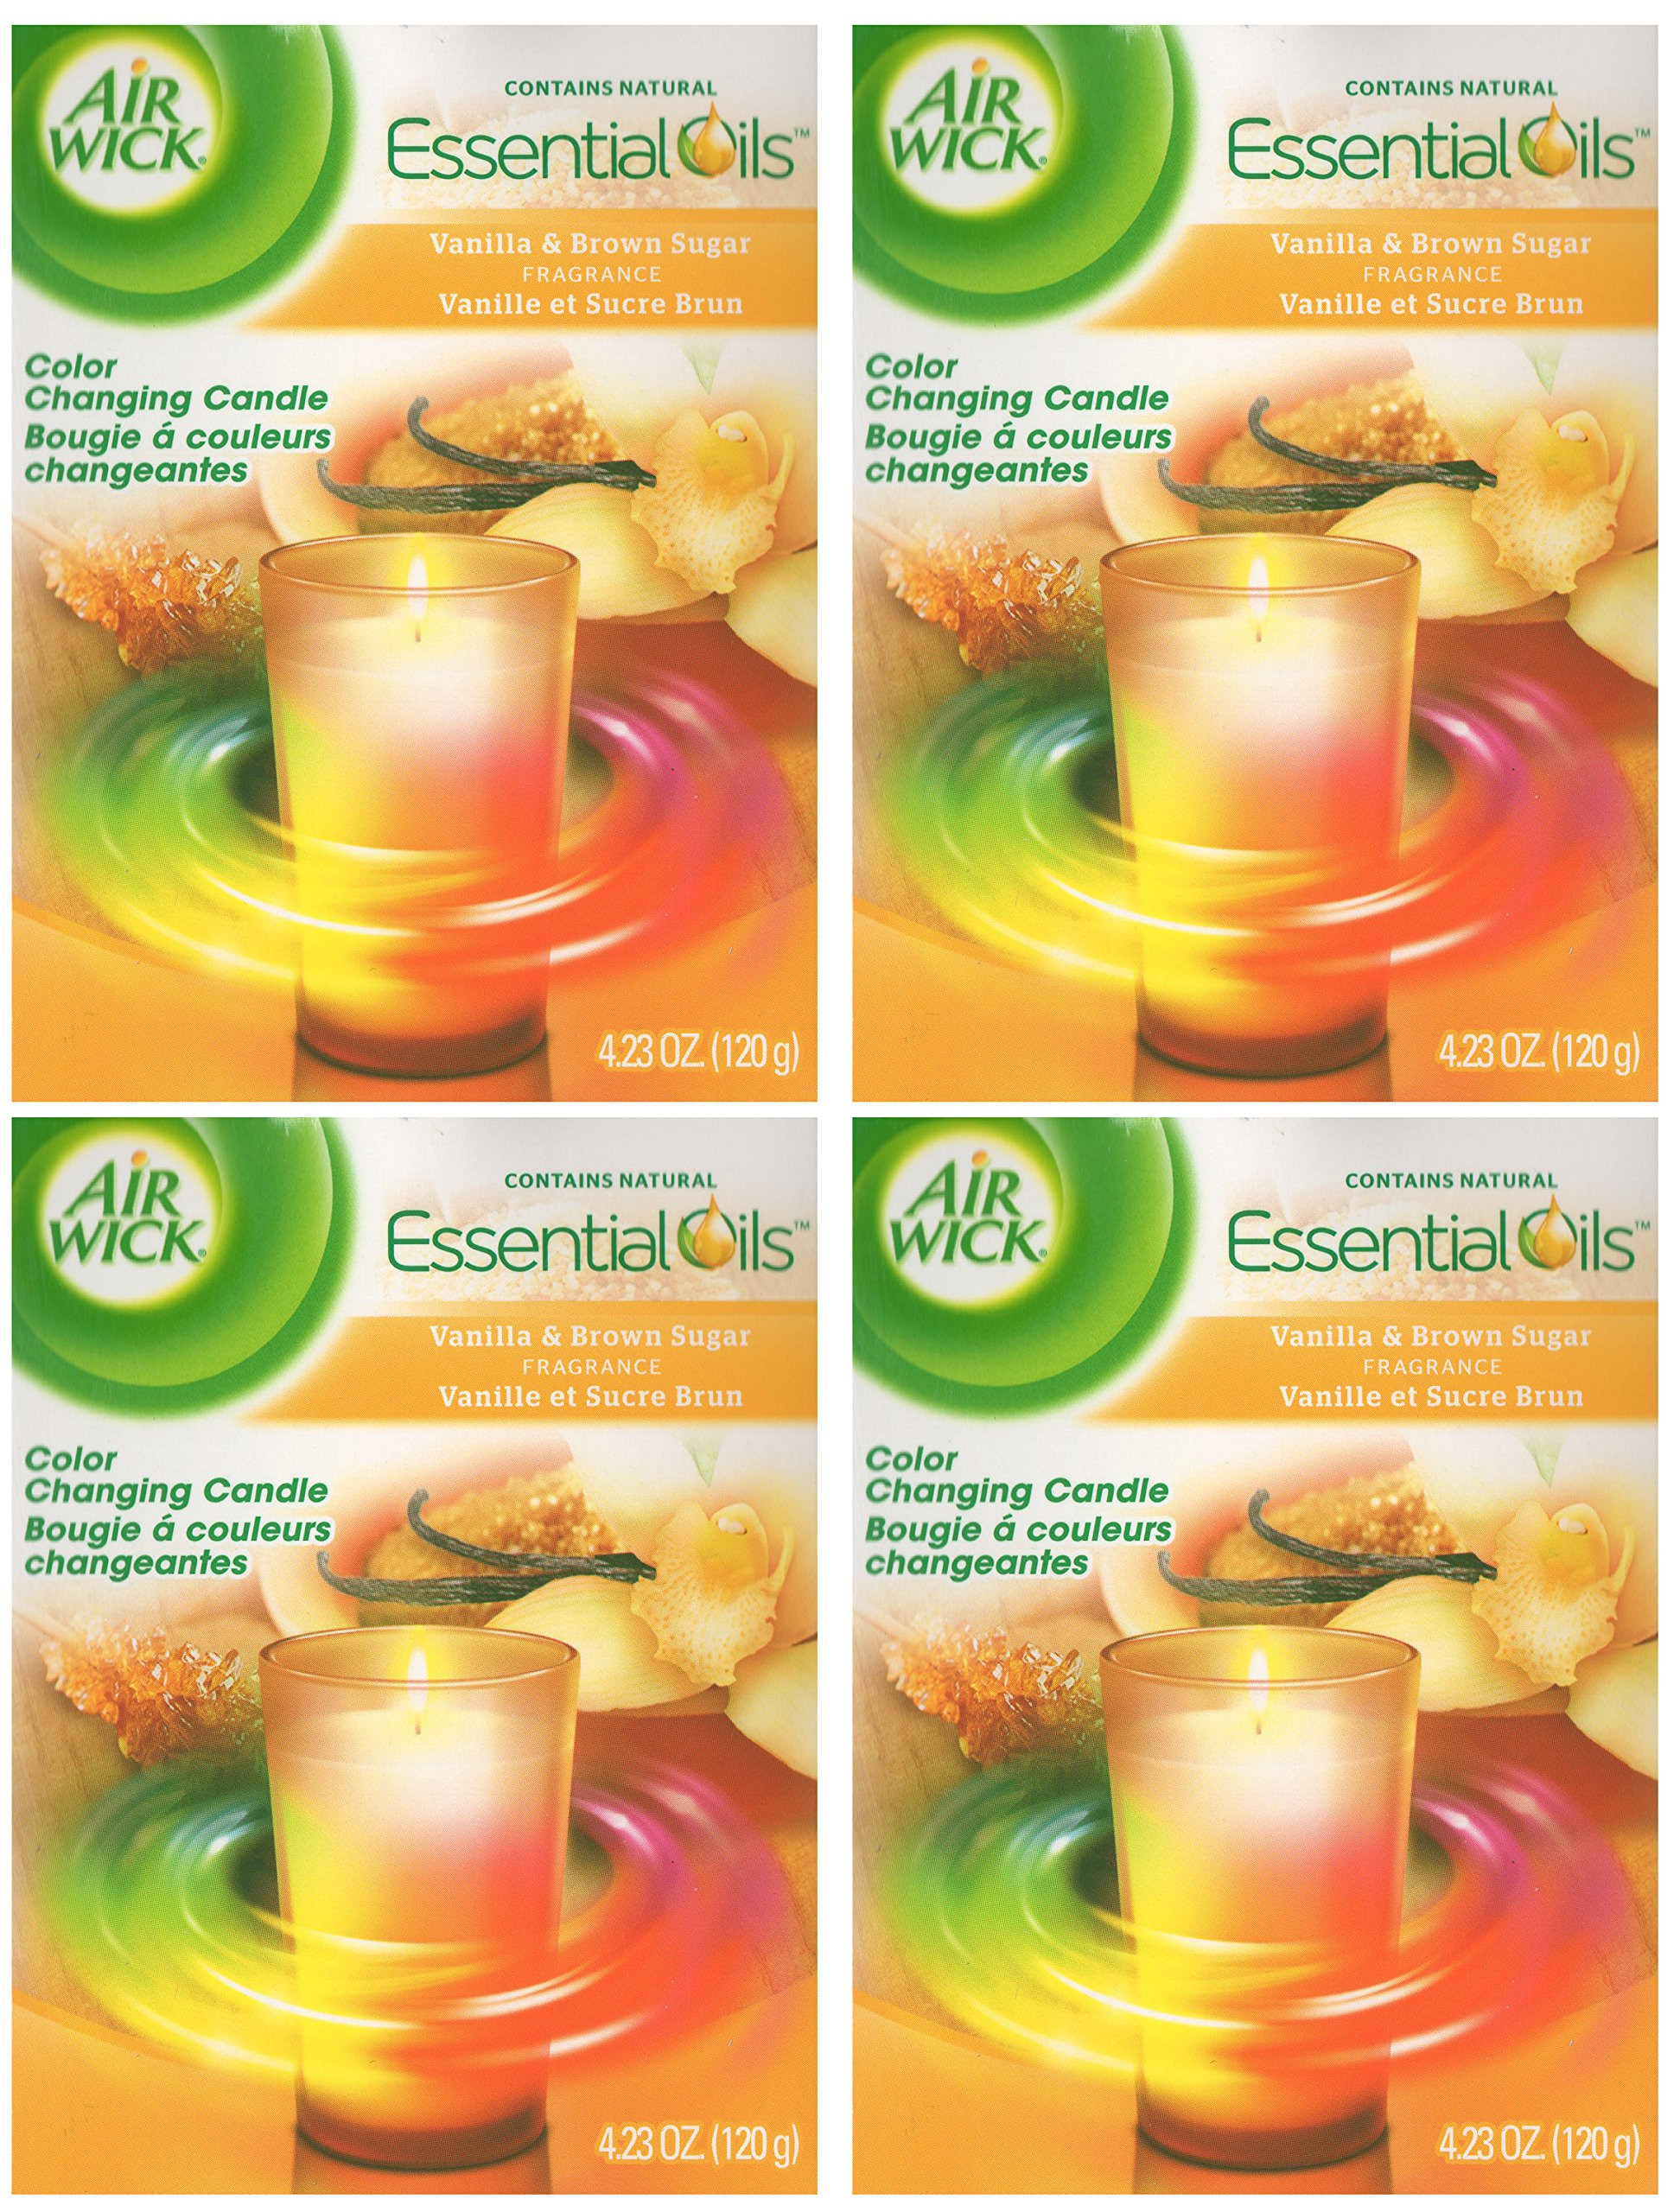 Air Wick Color Changing Scented Candle, Vanilla & Brown Sugar Scent , 4.23 ounce (4 Pack)